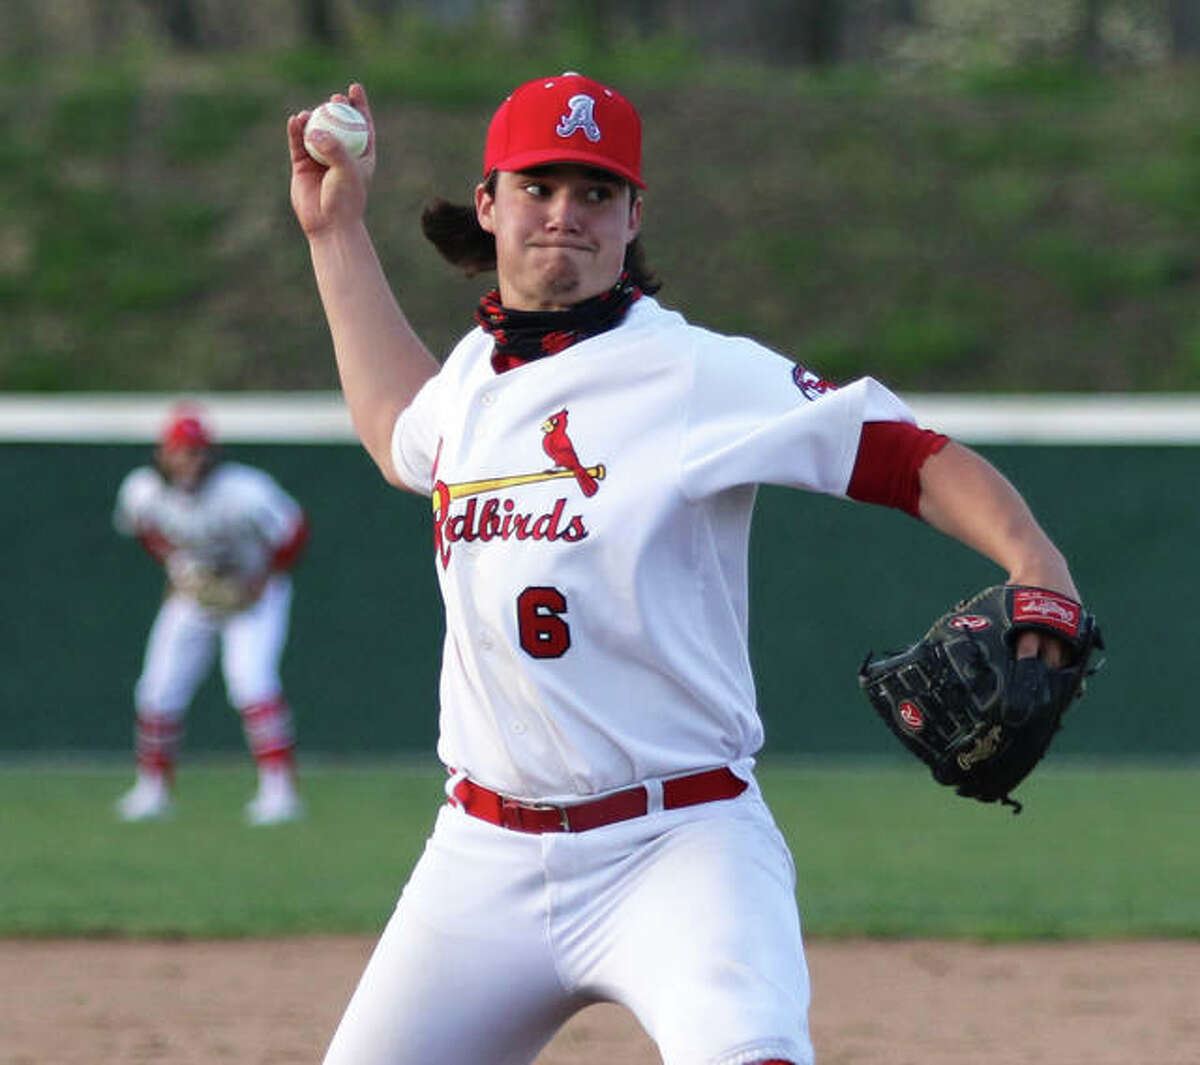 Alton's Jackson Brooks fired a two-hit shutout to beat Belleville East 1-0 in a SWC baseball game Monday at Alton High in Godfrey. The Redbirds senior is shown pitching earlier in the season.